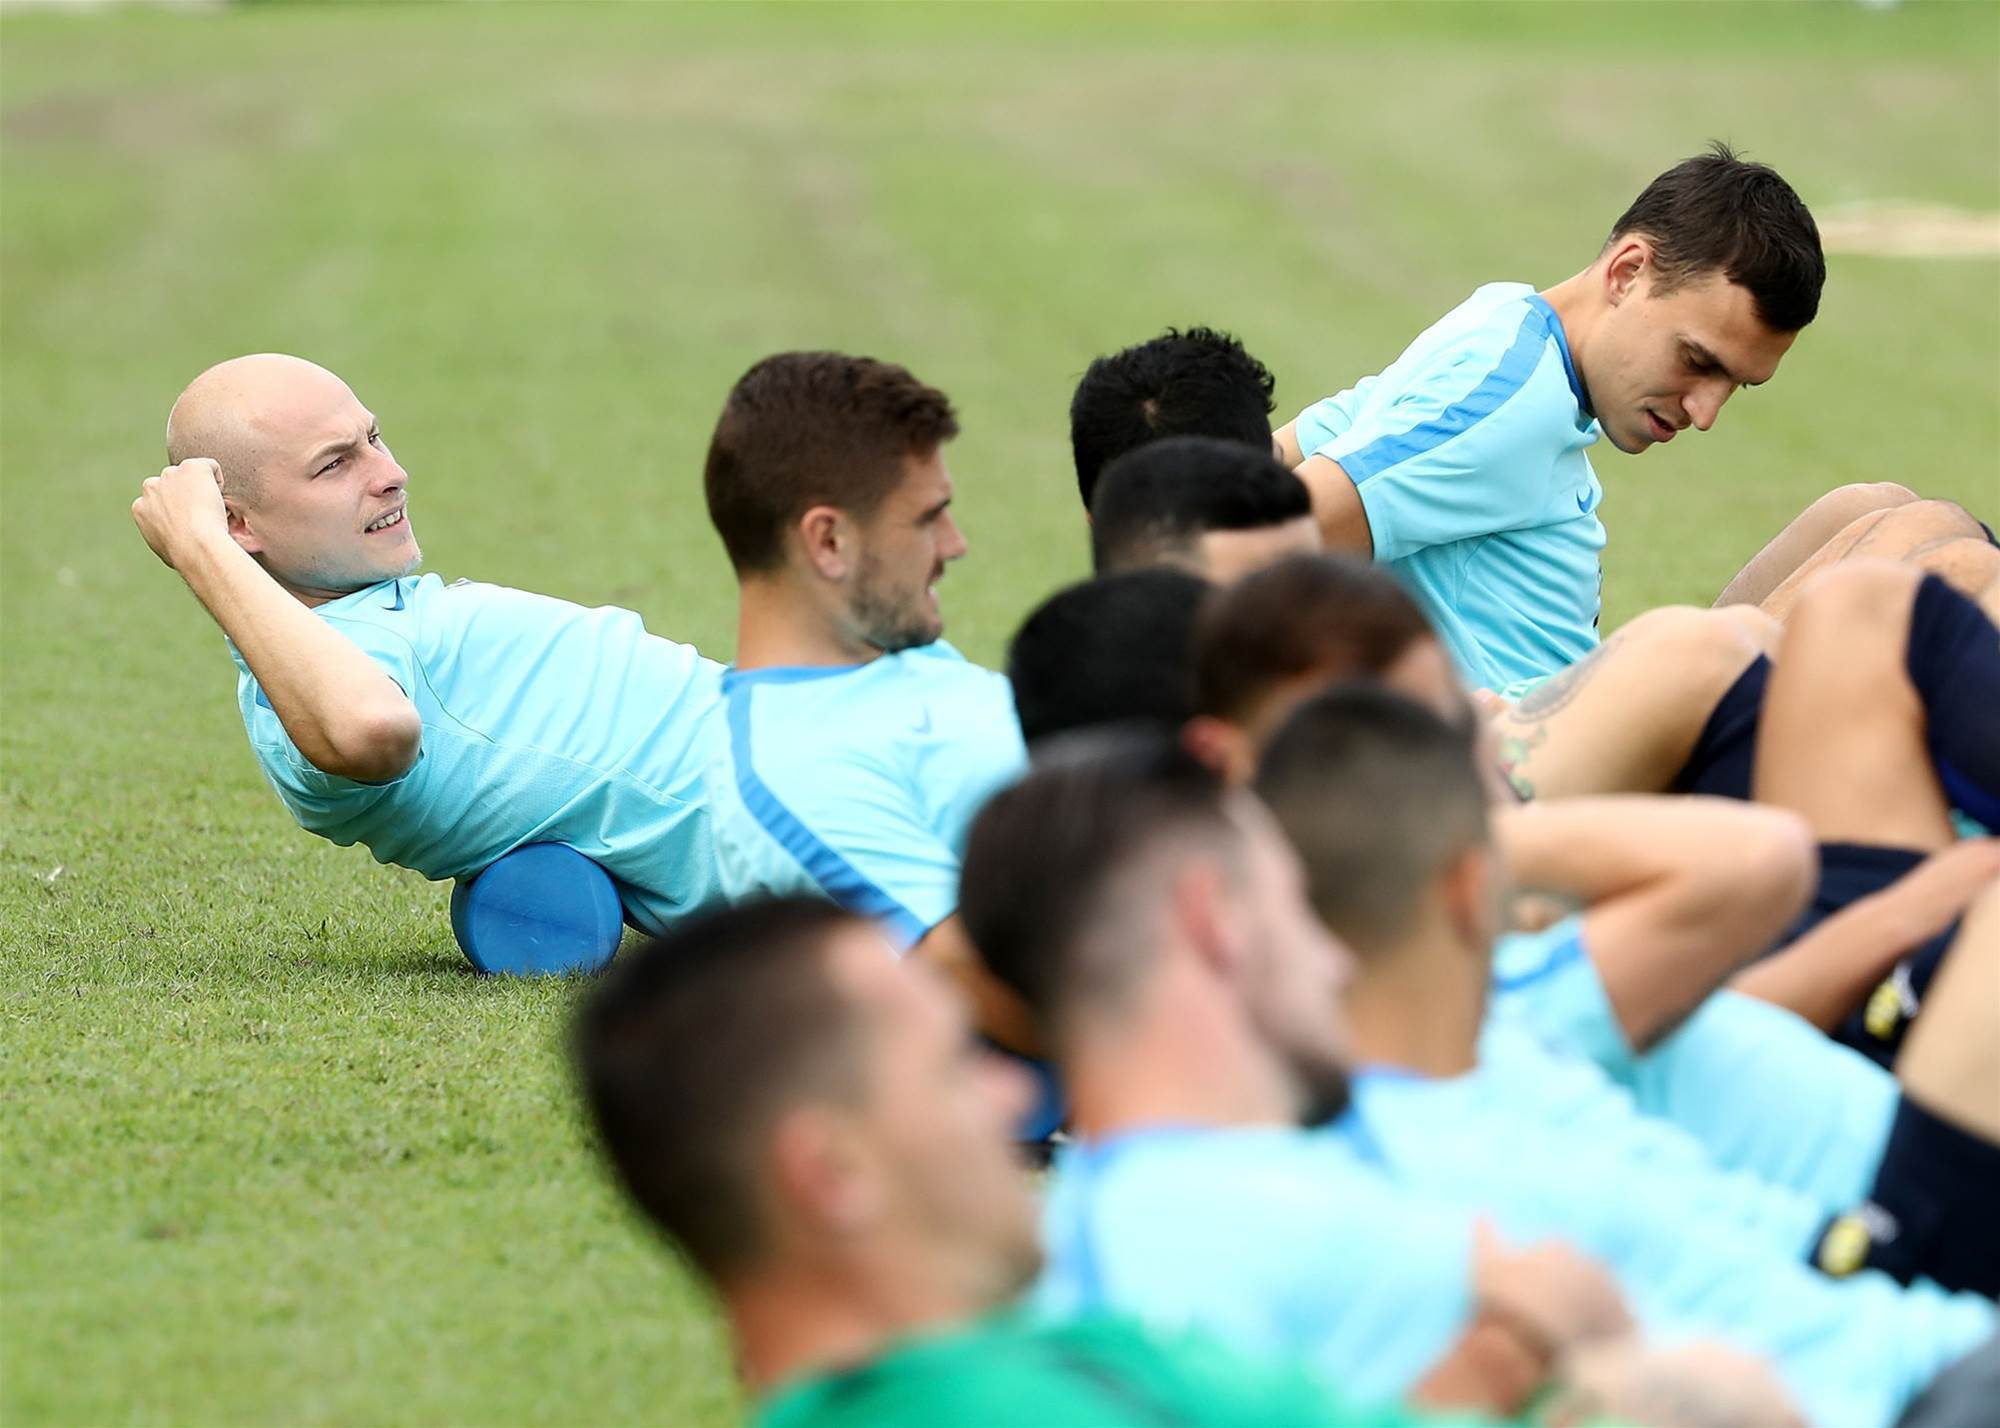 Pic special: Socceroos training session